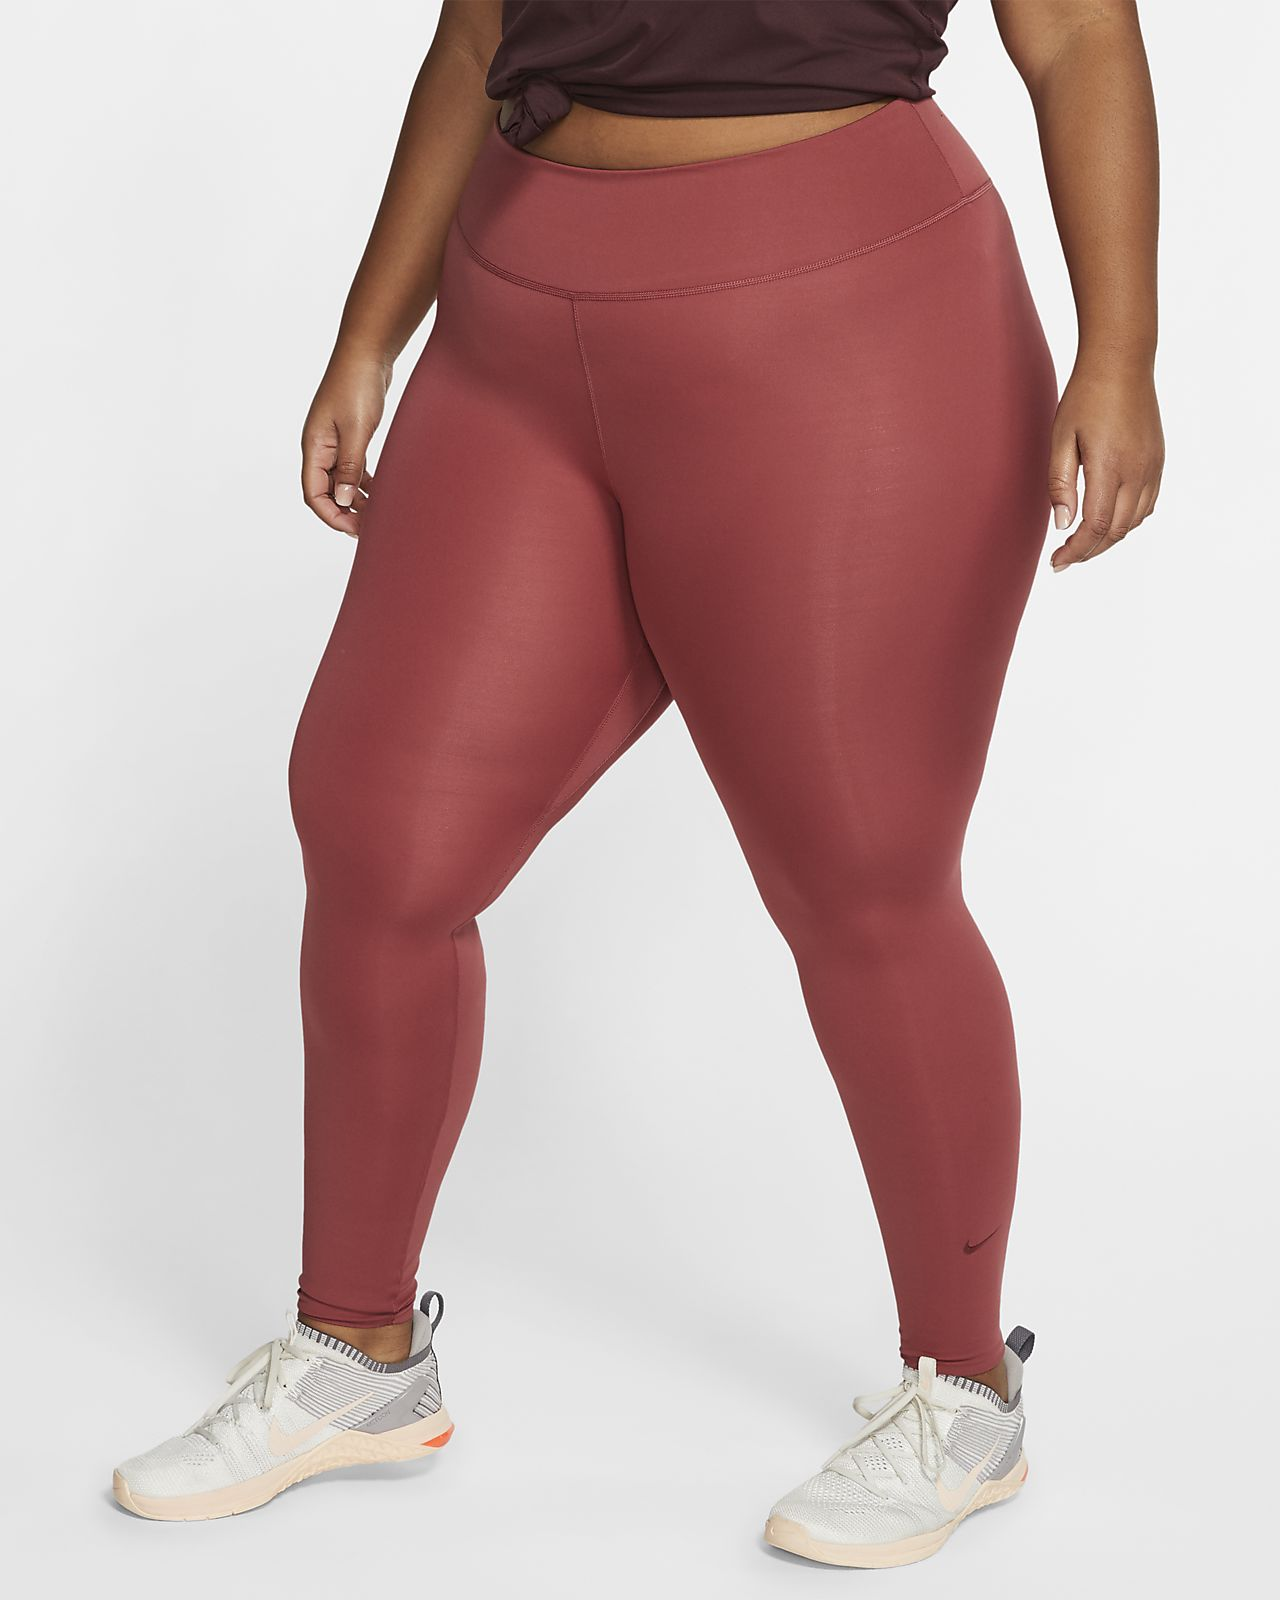 Tights Nike One Luxe Donna (Plus Size)